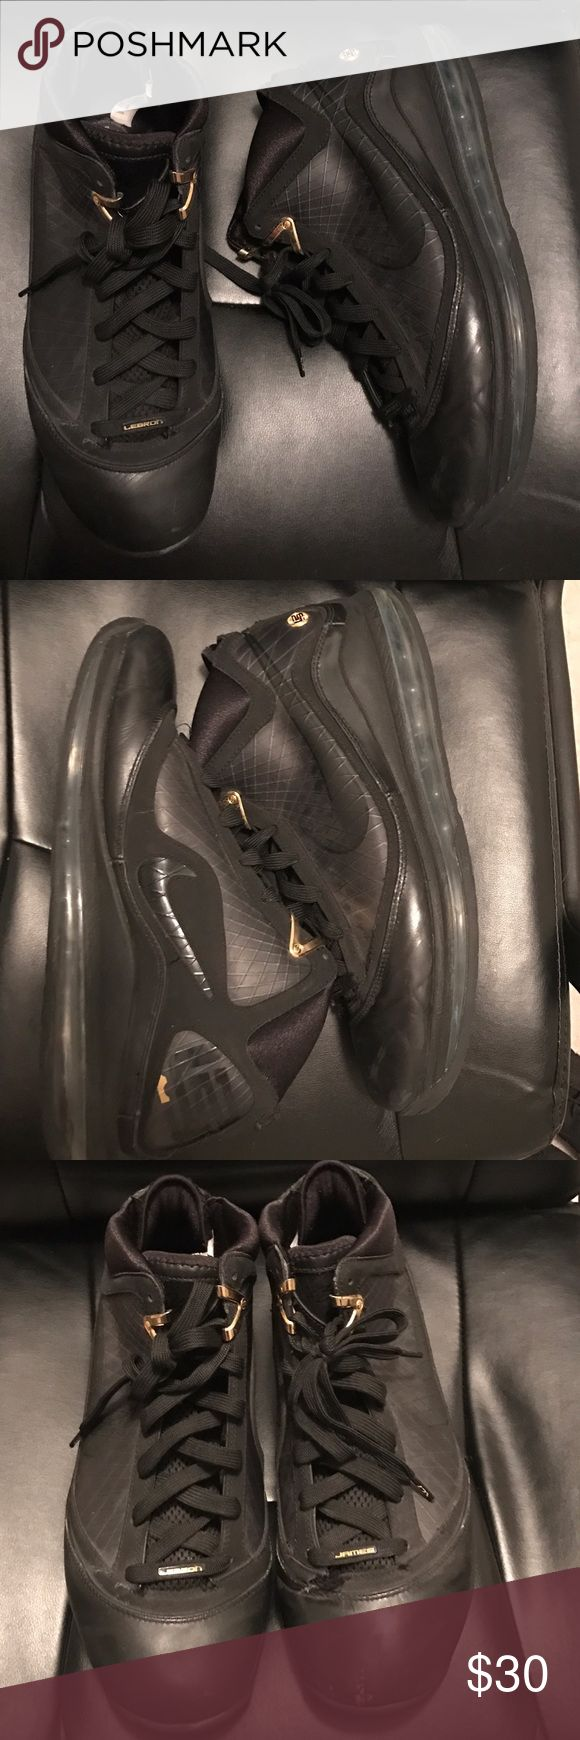 Nike LeBron 7 Basketball Shoes Size 12 Nike LeBron 7 Basketball Shoes -Size 12- Condition Worn but lots of life still left in these Nike Shoes Sneakers